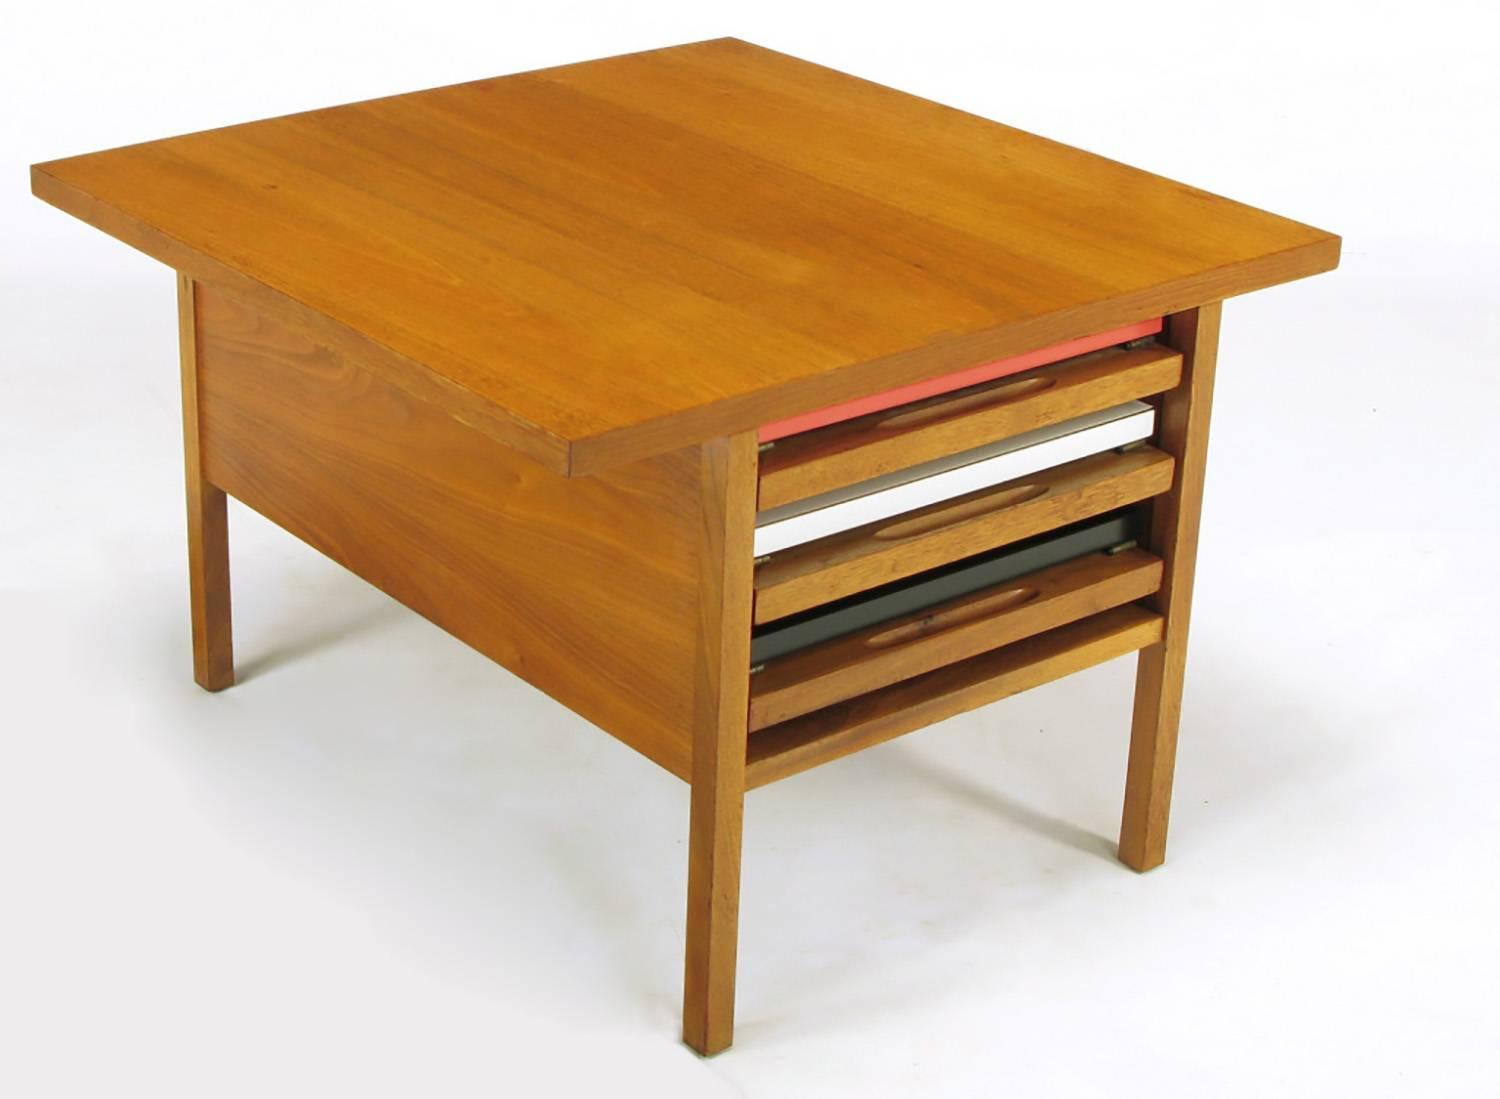 John Keal Walnut Coffee Table With Three Folding Side Tables For Sale